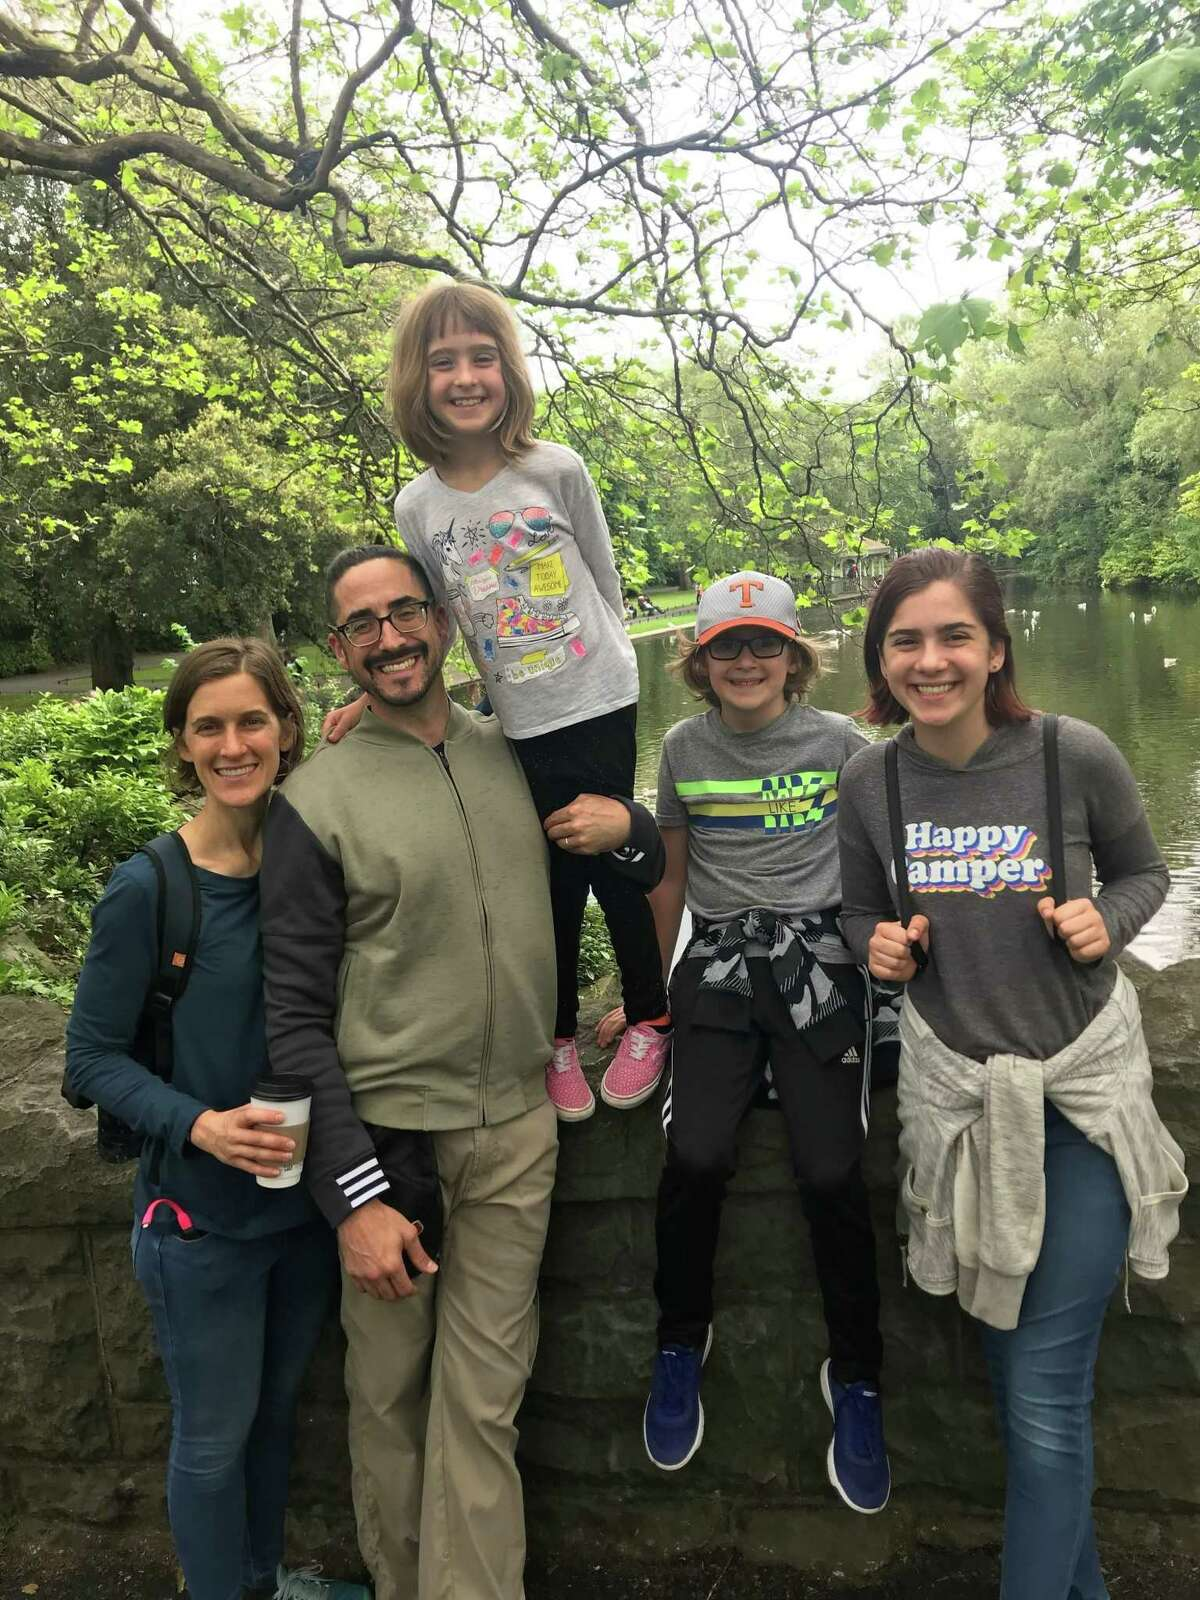 With the grant money he was awarded, Pastor Sean Steele and his family will be traveling to South America for several weeks to an immersive Spanish language school. From left to right: Becky Steele, Sean Steele, and their children Nora, Sebastian, and Margo.